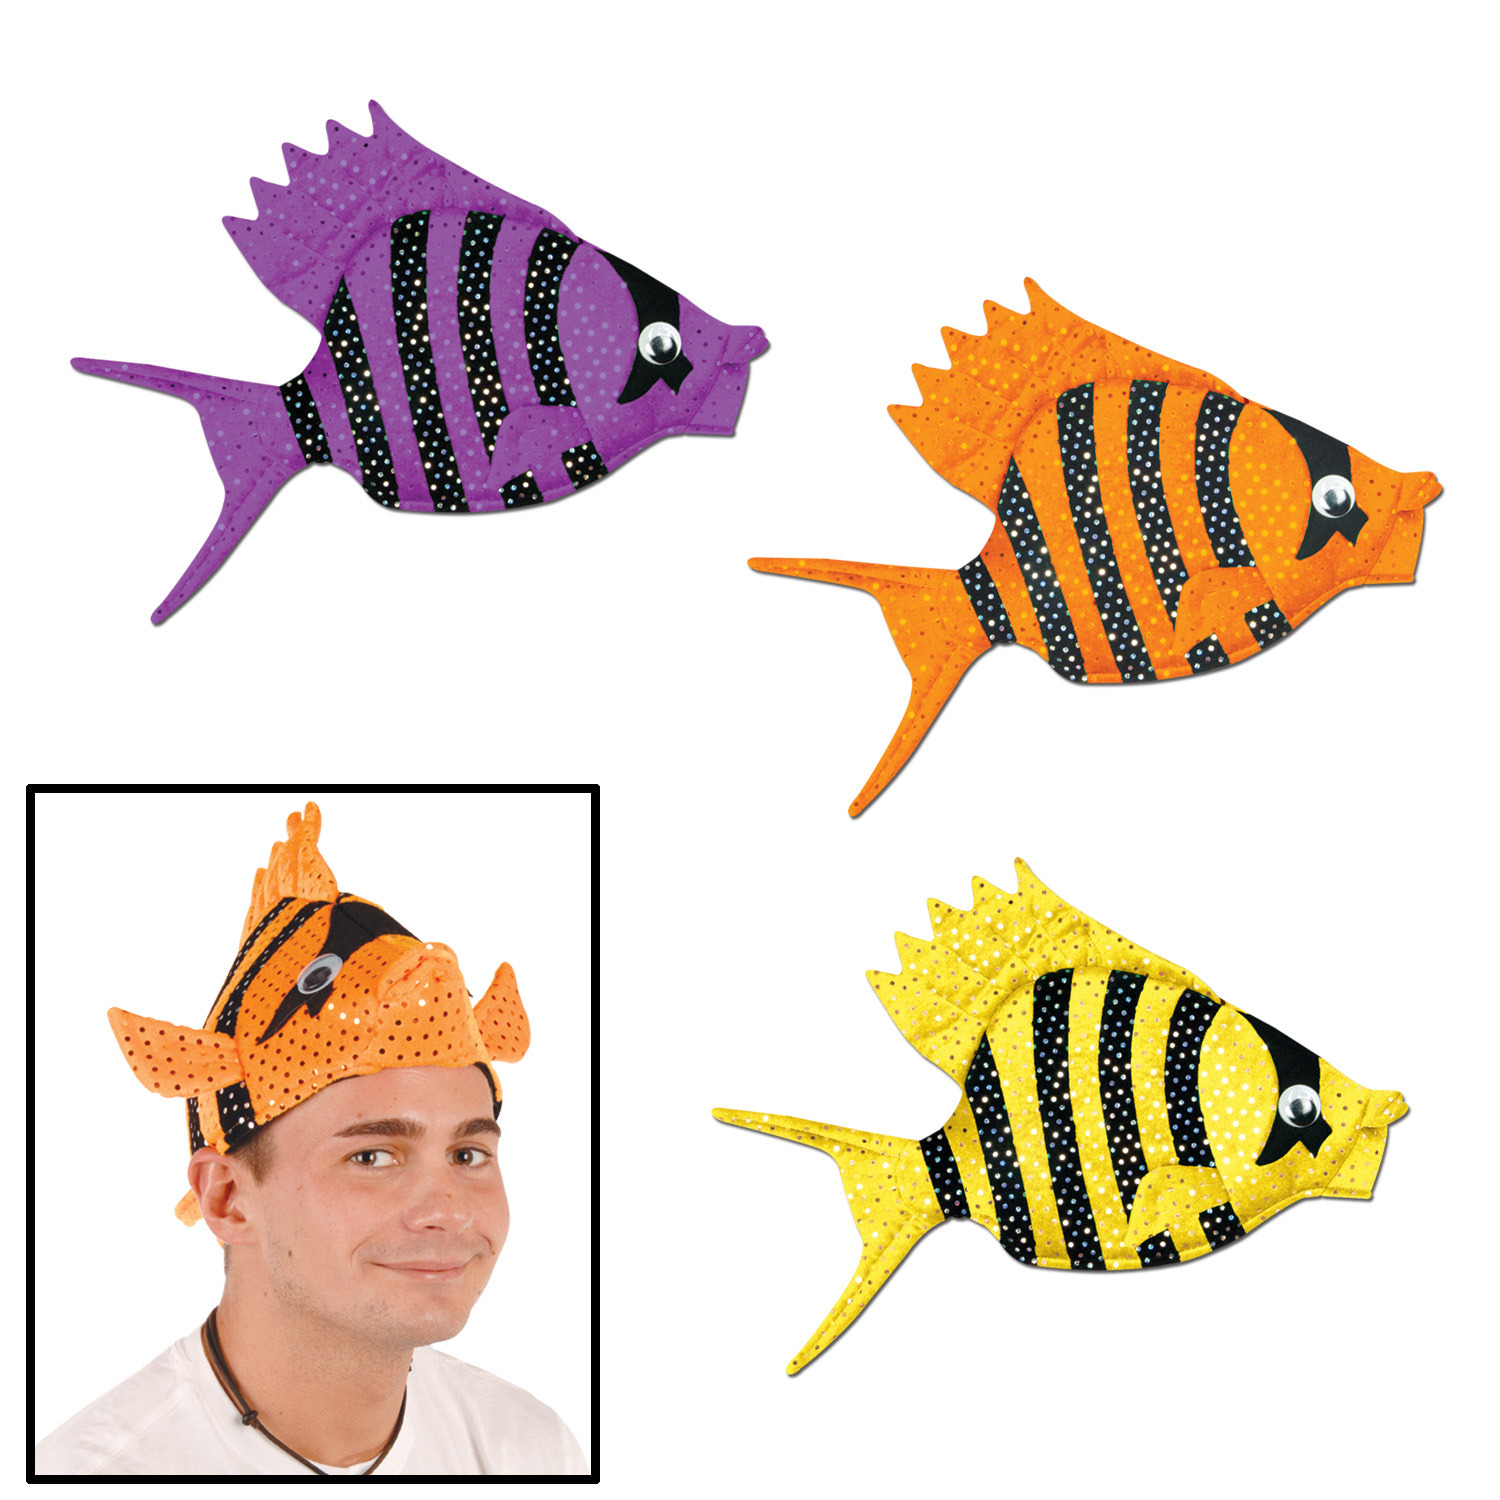 Plush Luau Fish Hats (Pack of 6) Plush Luau Fish Hats, party favor, luau, new years eve, wholesale, inexpensive, bulk